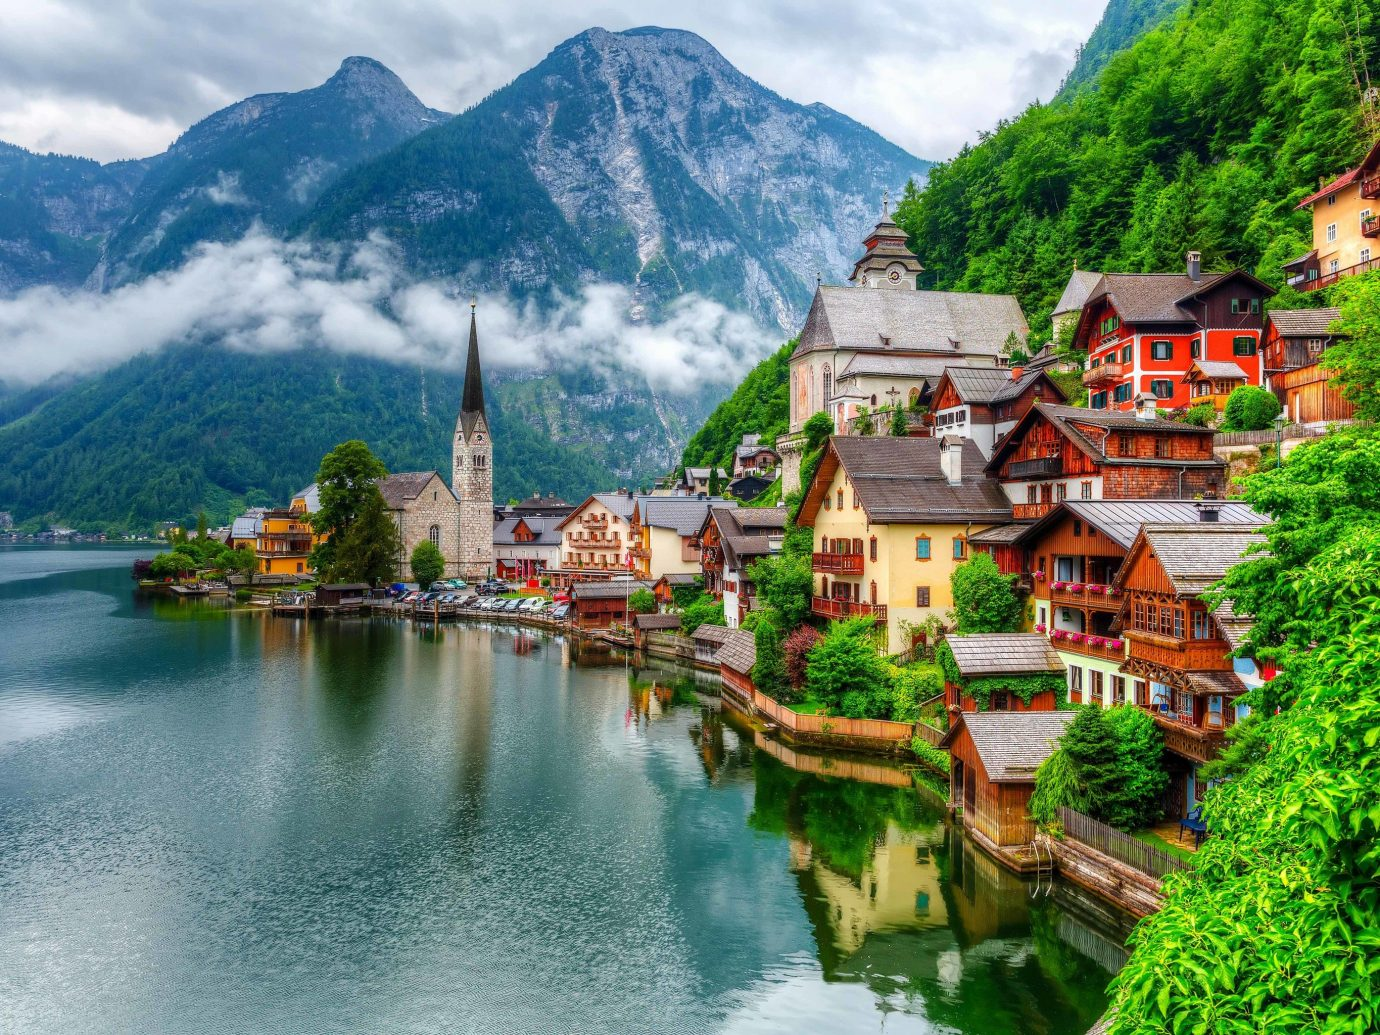 Lakes + Rivers Outdoors + Adventure mountain outdoor tree water mountain village Nature mount scenery mountainous landforms mountain range reflection Lake tourist attraction sky hill station tourism alps River Village fjord watercourse bank landscape resort town leisure national park computer wallpaper reservoir City surrounded